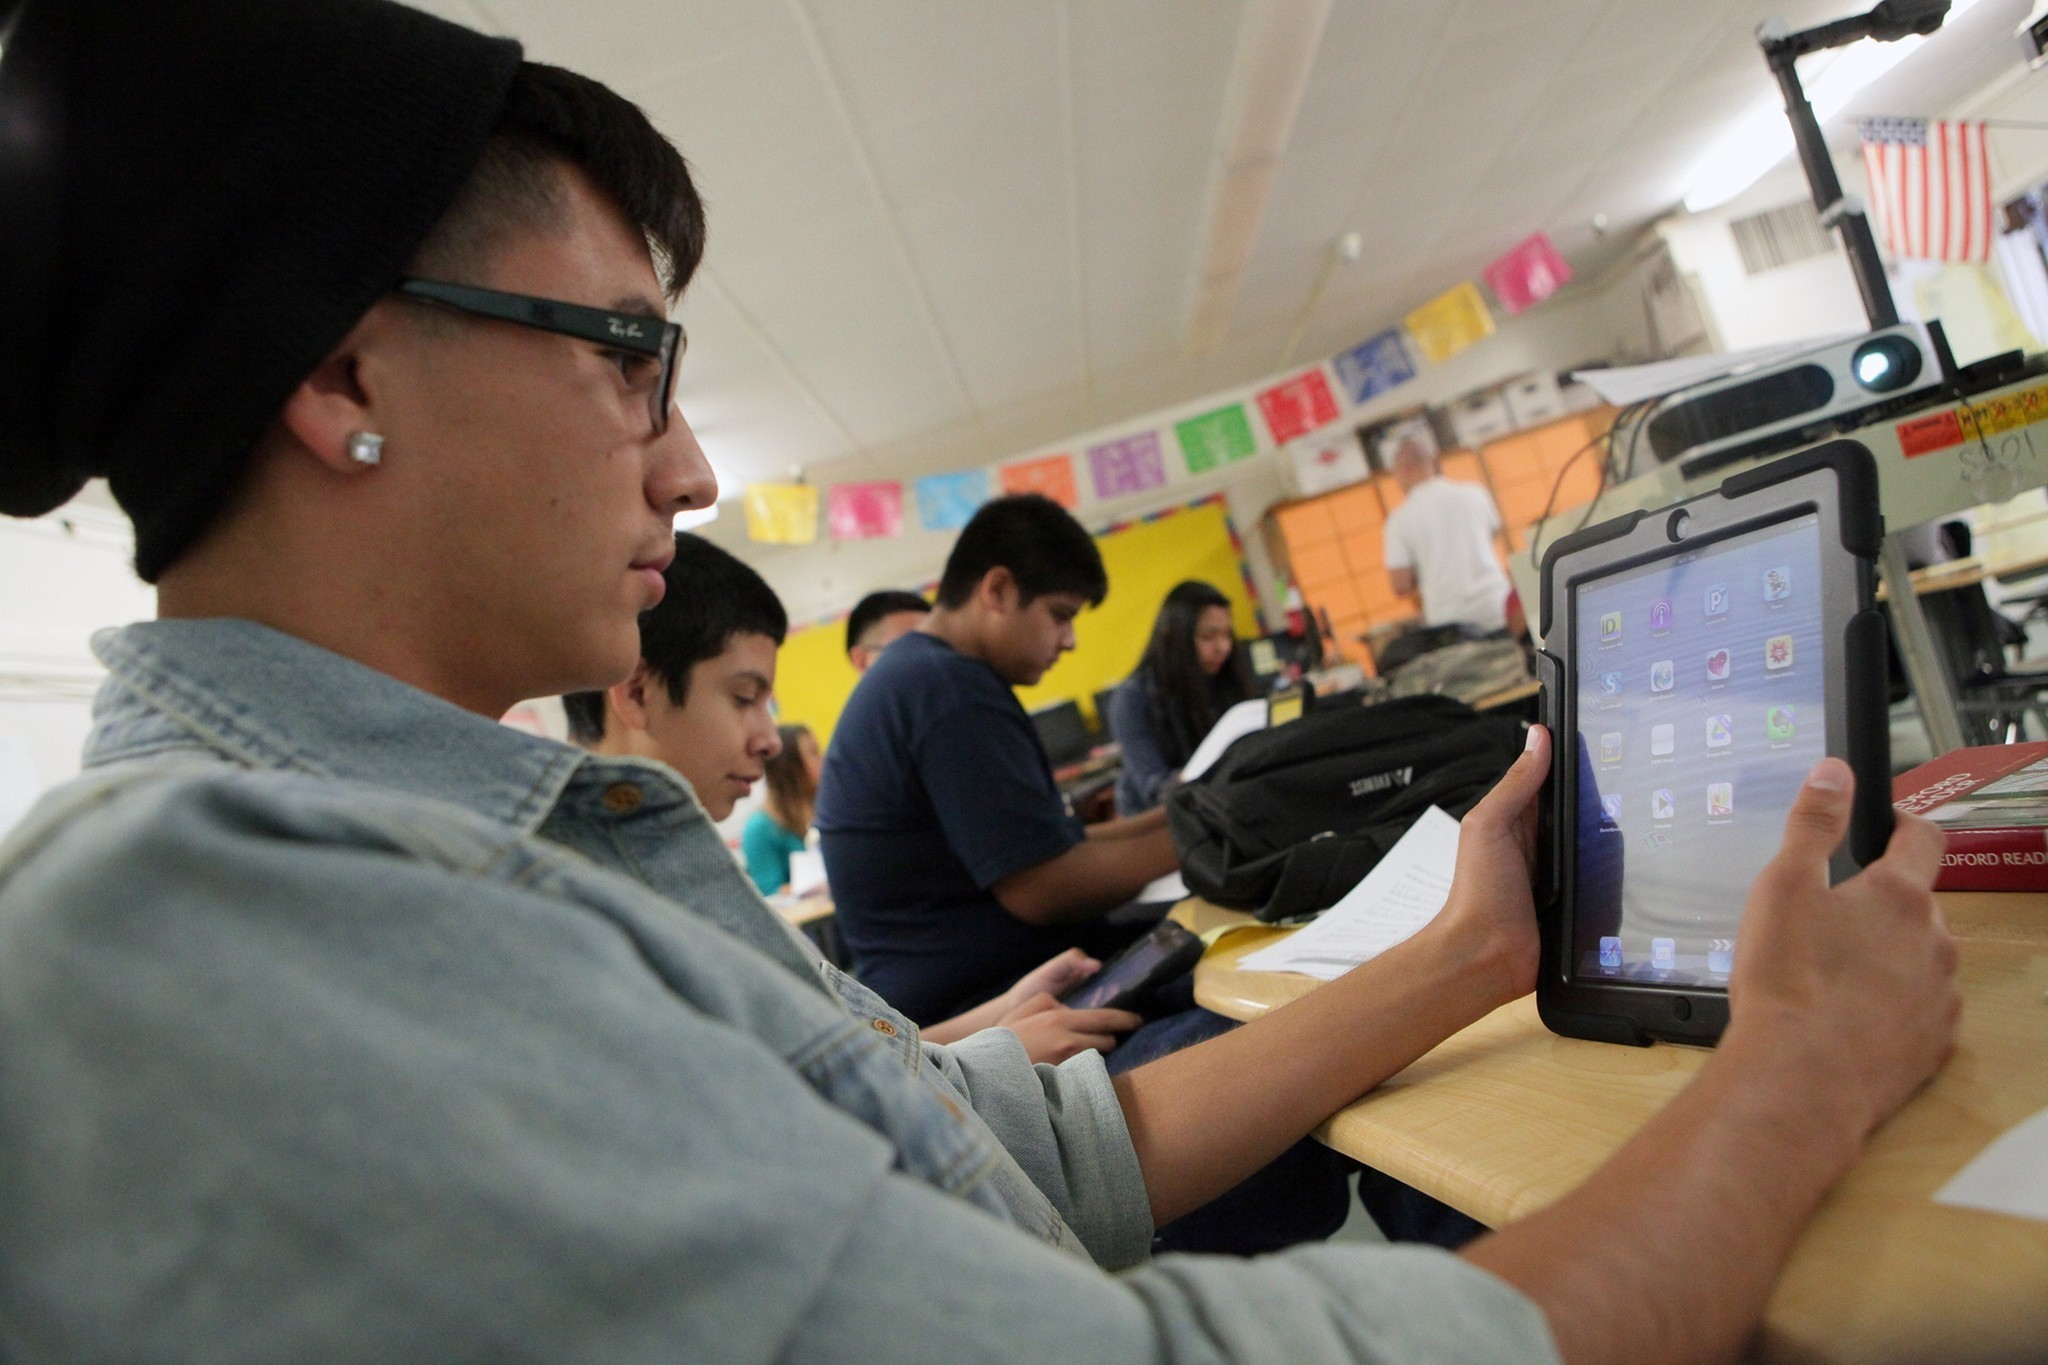 2 firms that won LAUSD's tech program most active in seeking meetings